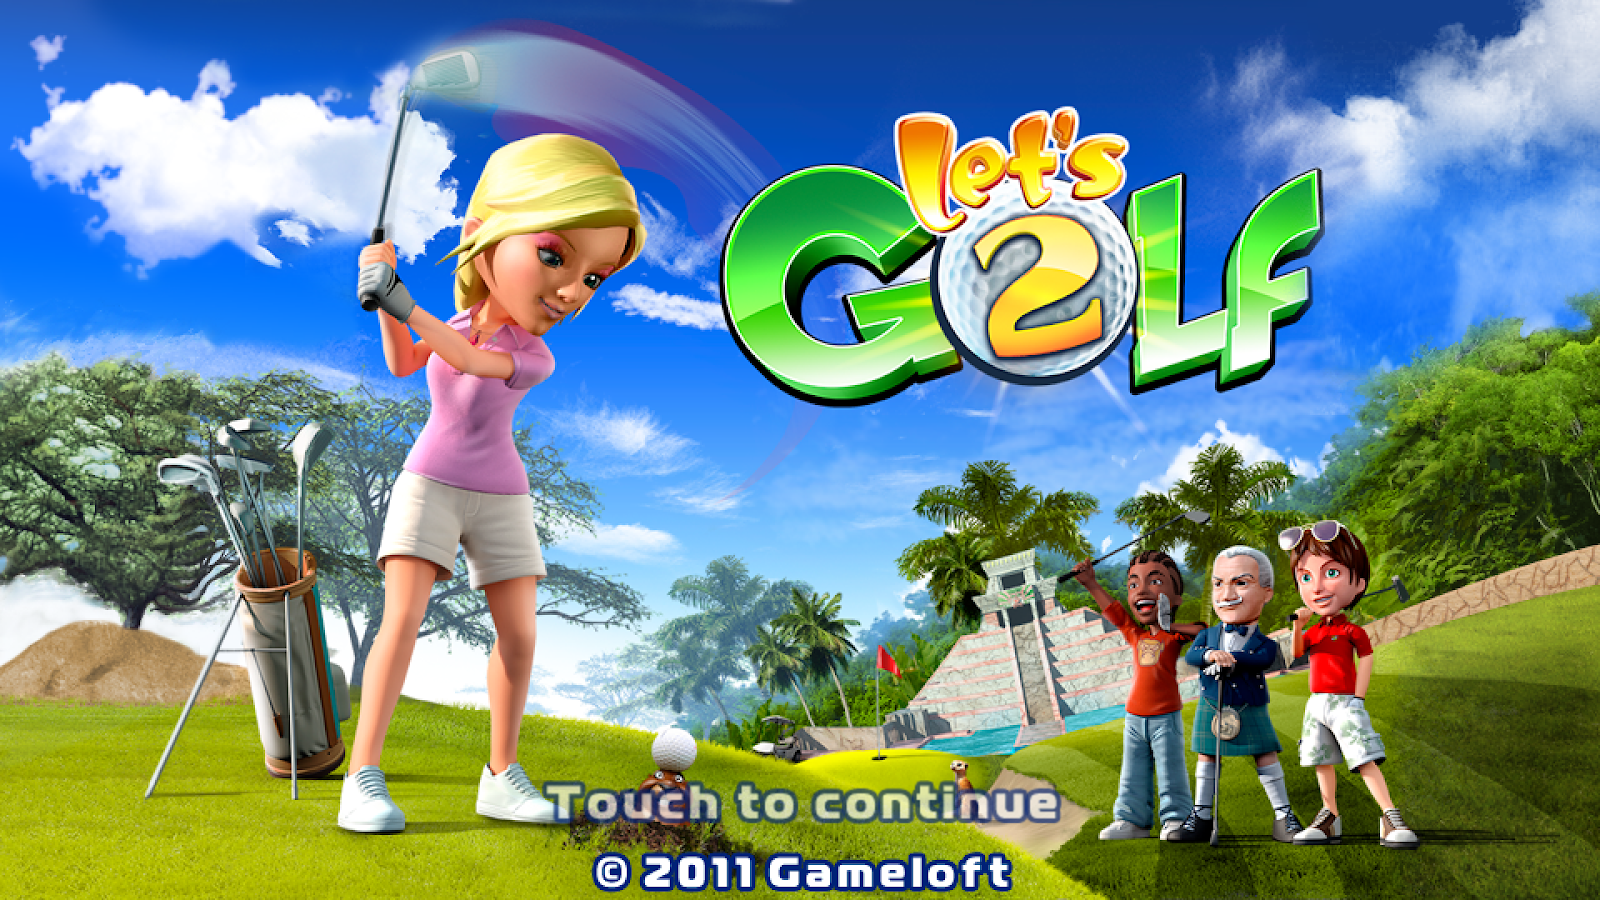 lets golf 2 hd 3.4.2 for android (apk and data)